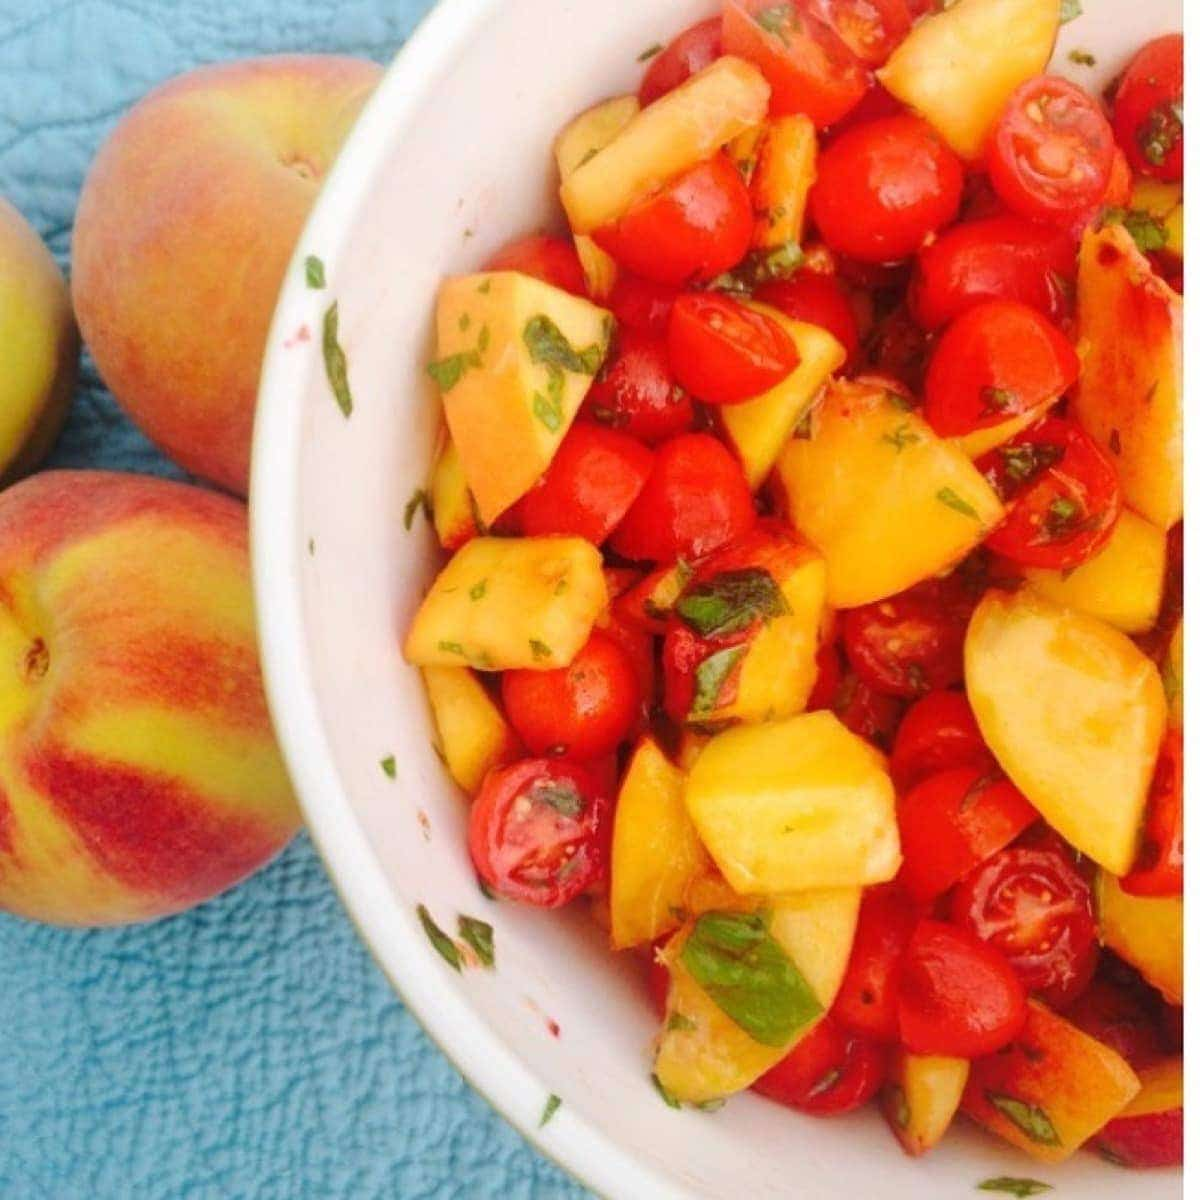 tomatoes in a delicious, fresh-tasting tomato-basil-peach salad ...